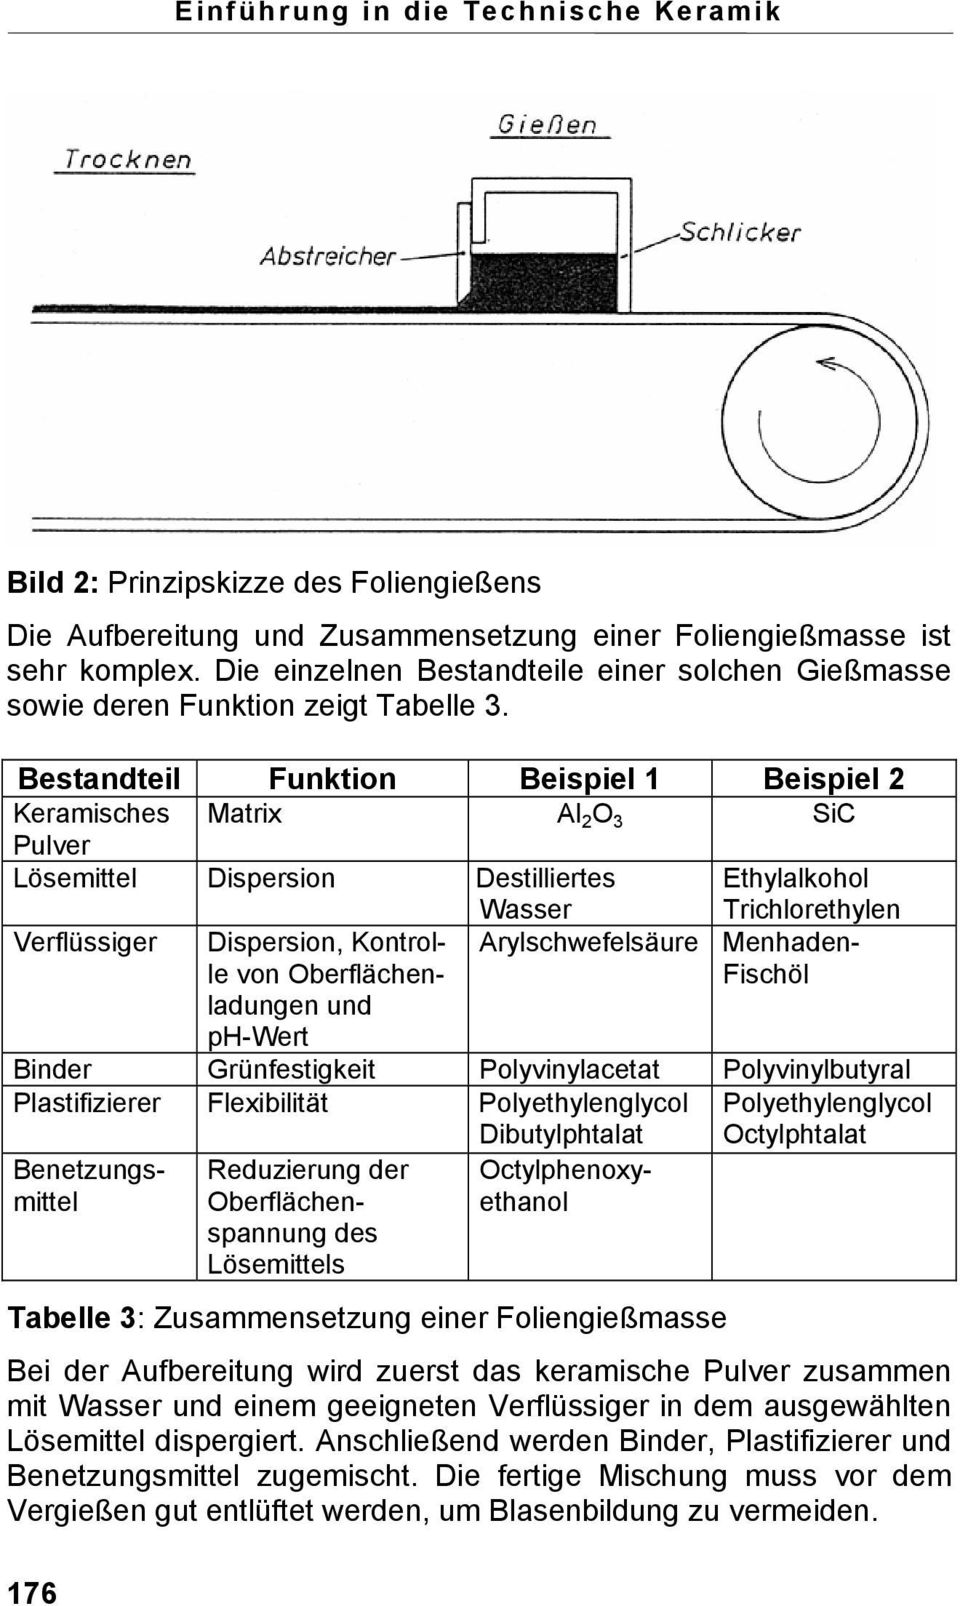 Bestandteil Funktion Beispiel 1 Beispiel 2 Keramisches Matrix Al 2 O 3 SiC Pulver Lösemittel Dispersion Destilliertes Wasser Ethylalkohol Trichlorethylen Verflüssiger Dispersion, Kontrolle von